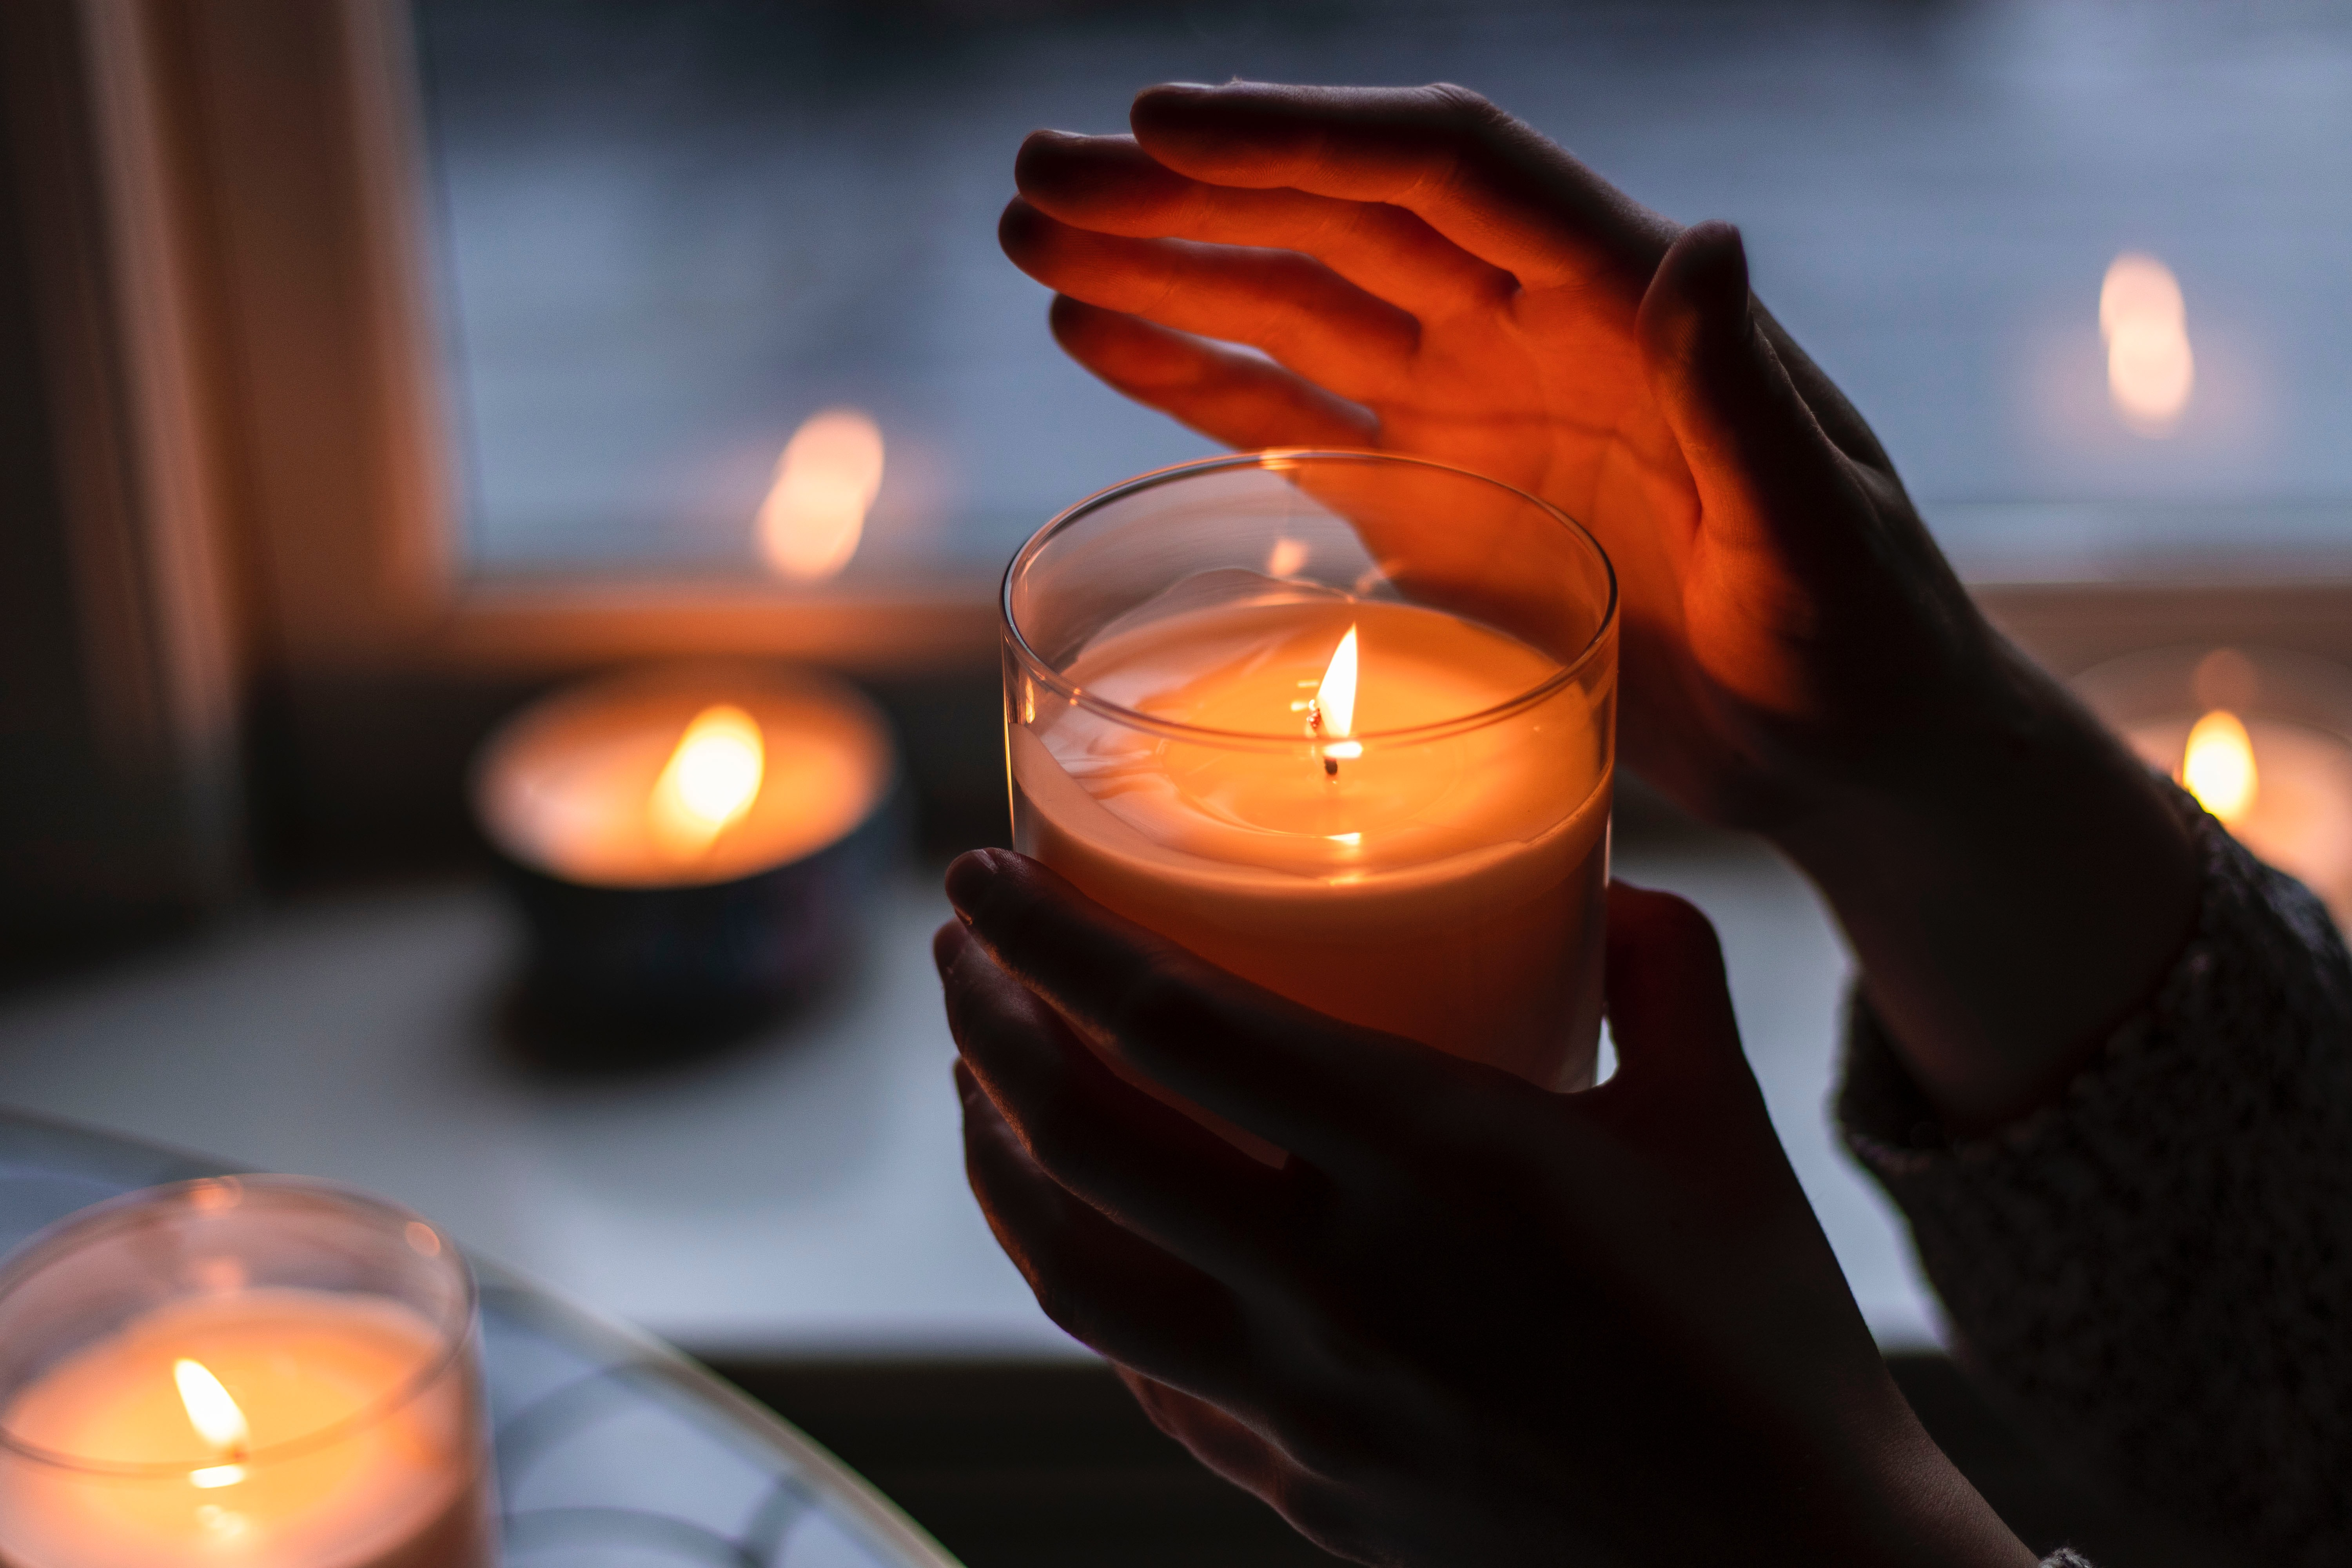 Get a Better Burn with a Little Candle Know-how's featured image